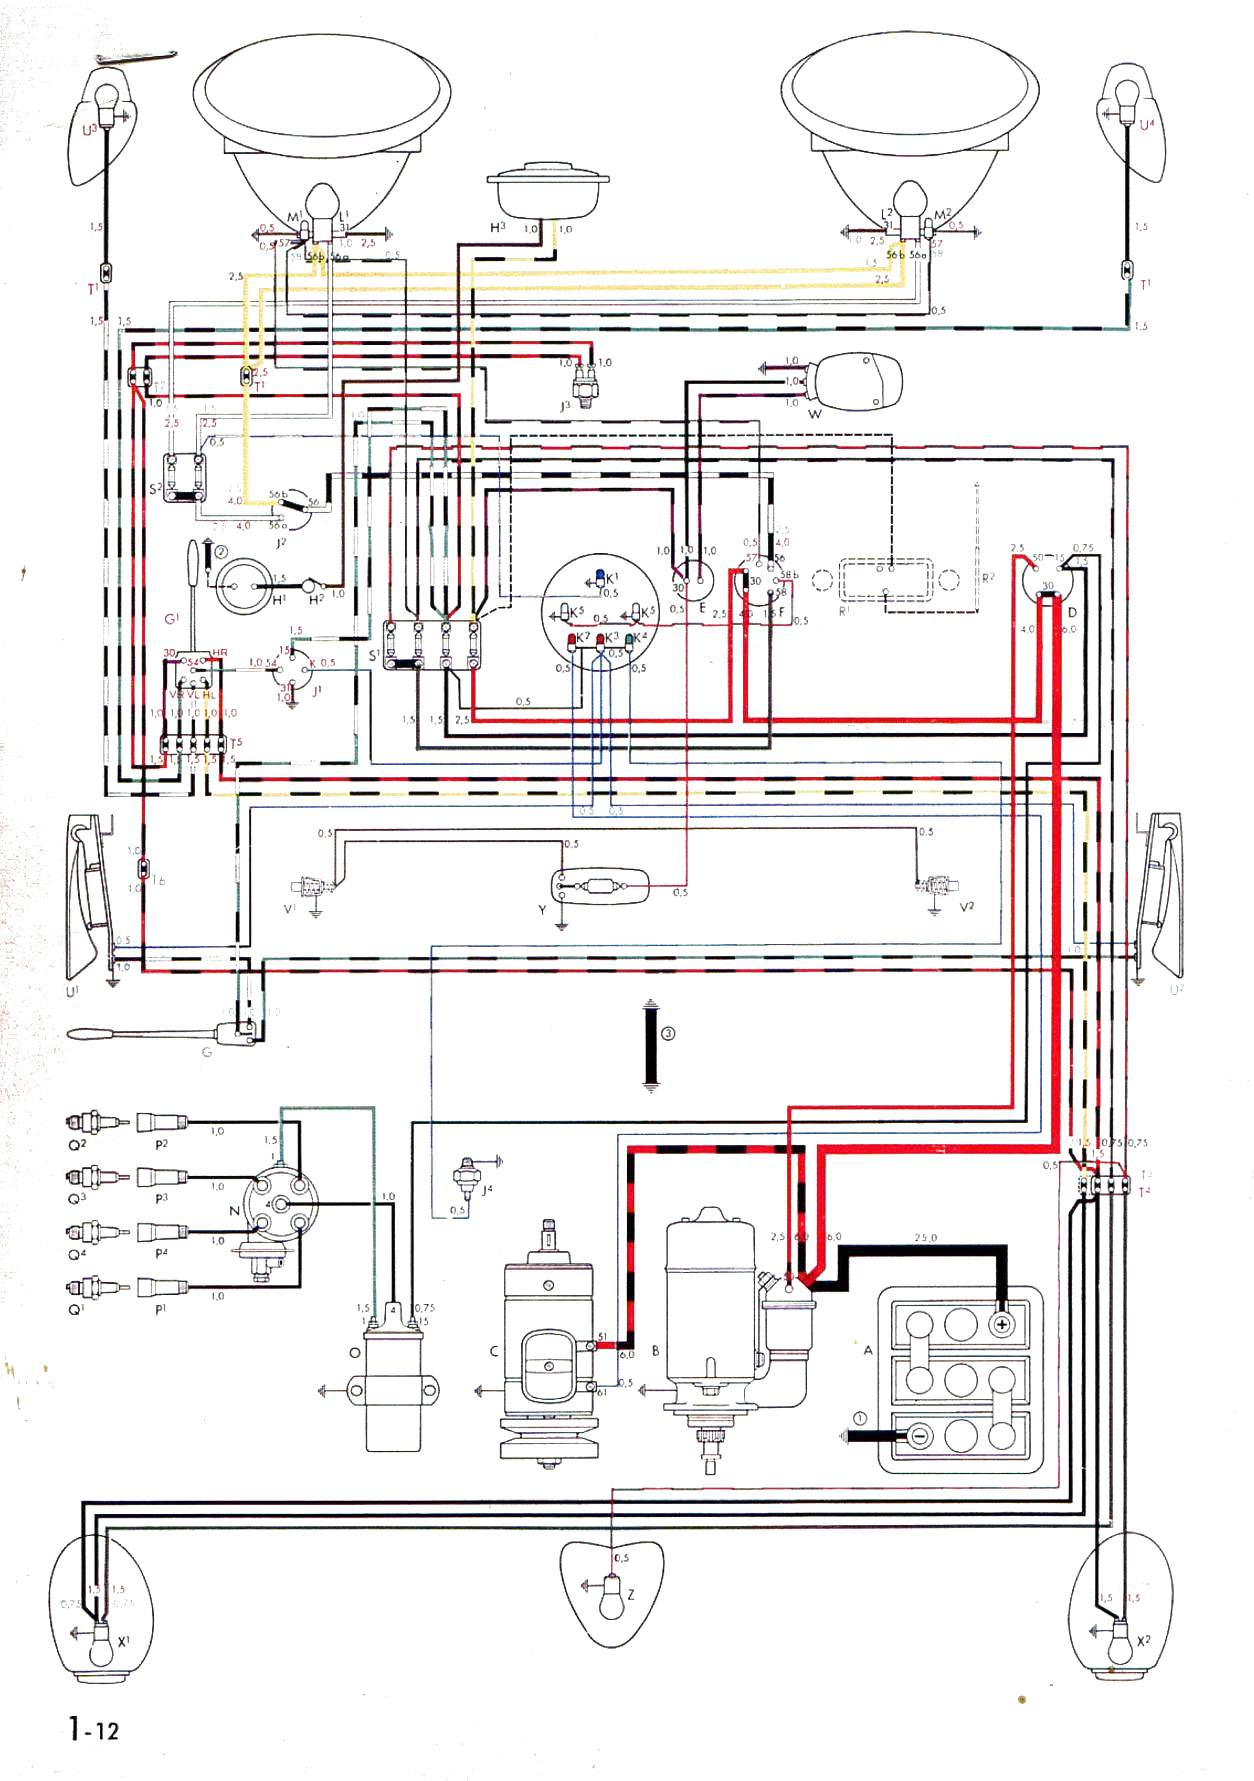 1963 Vw Beetle Wiring Harness Data Diagram Bug Complete Schematics 1968